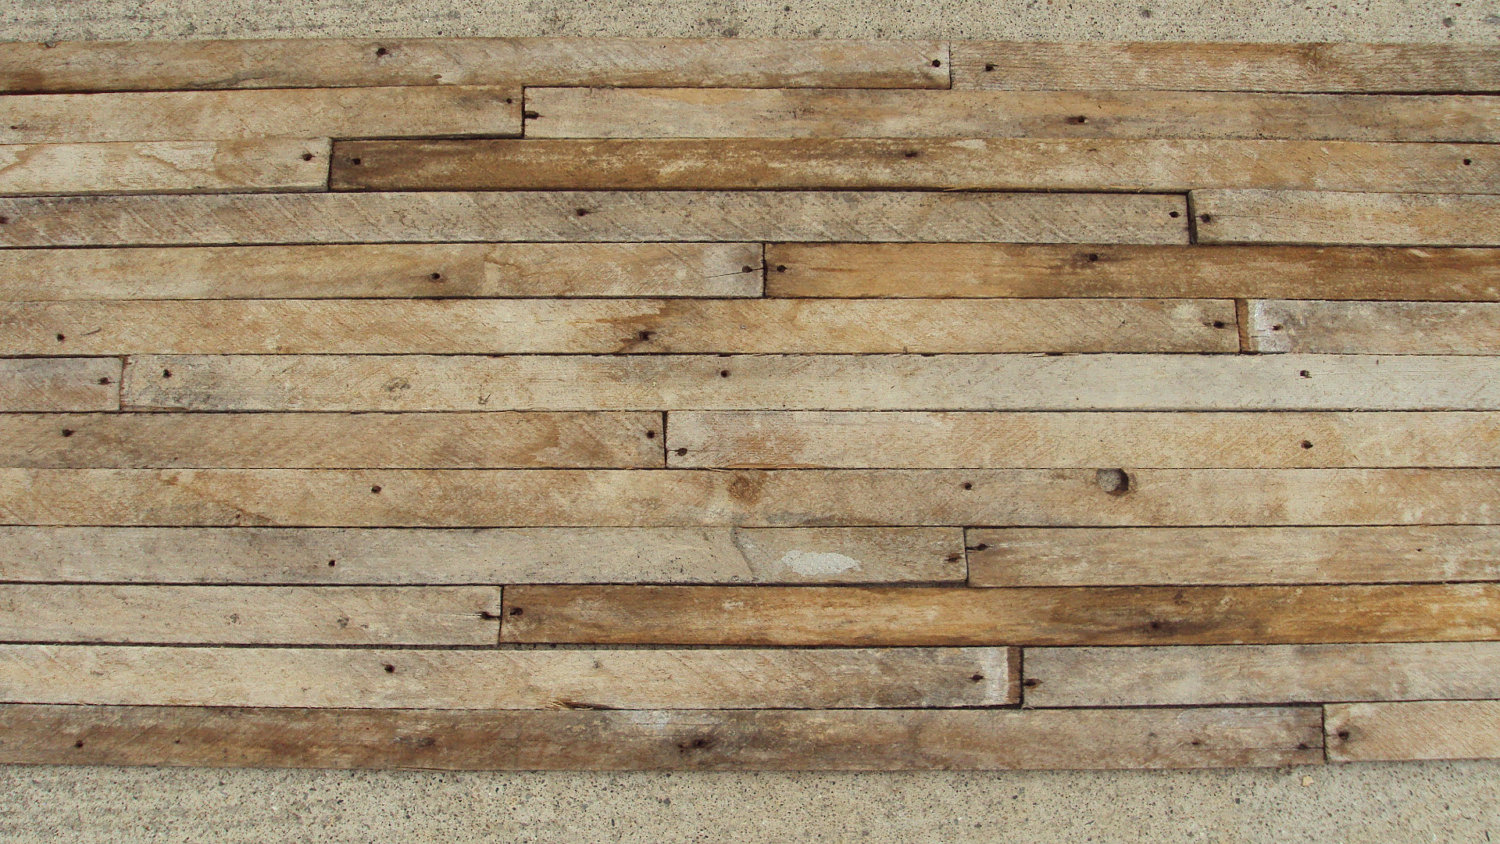 Wood wall design sponge